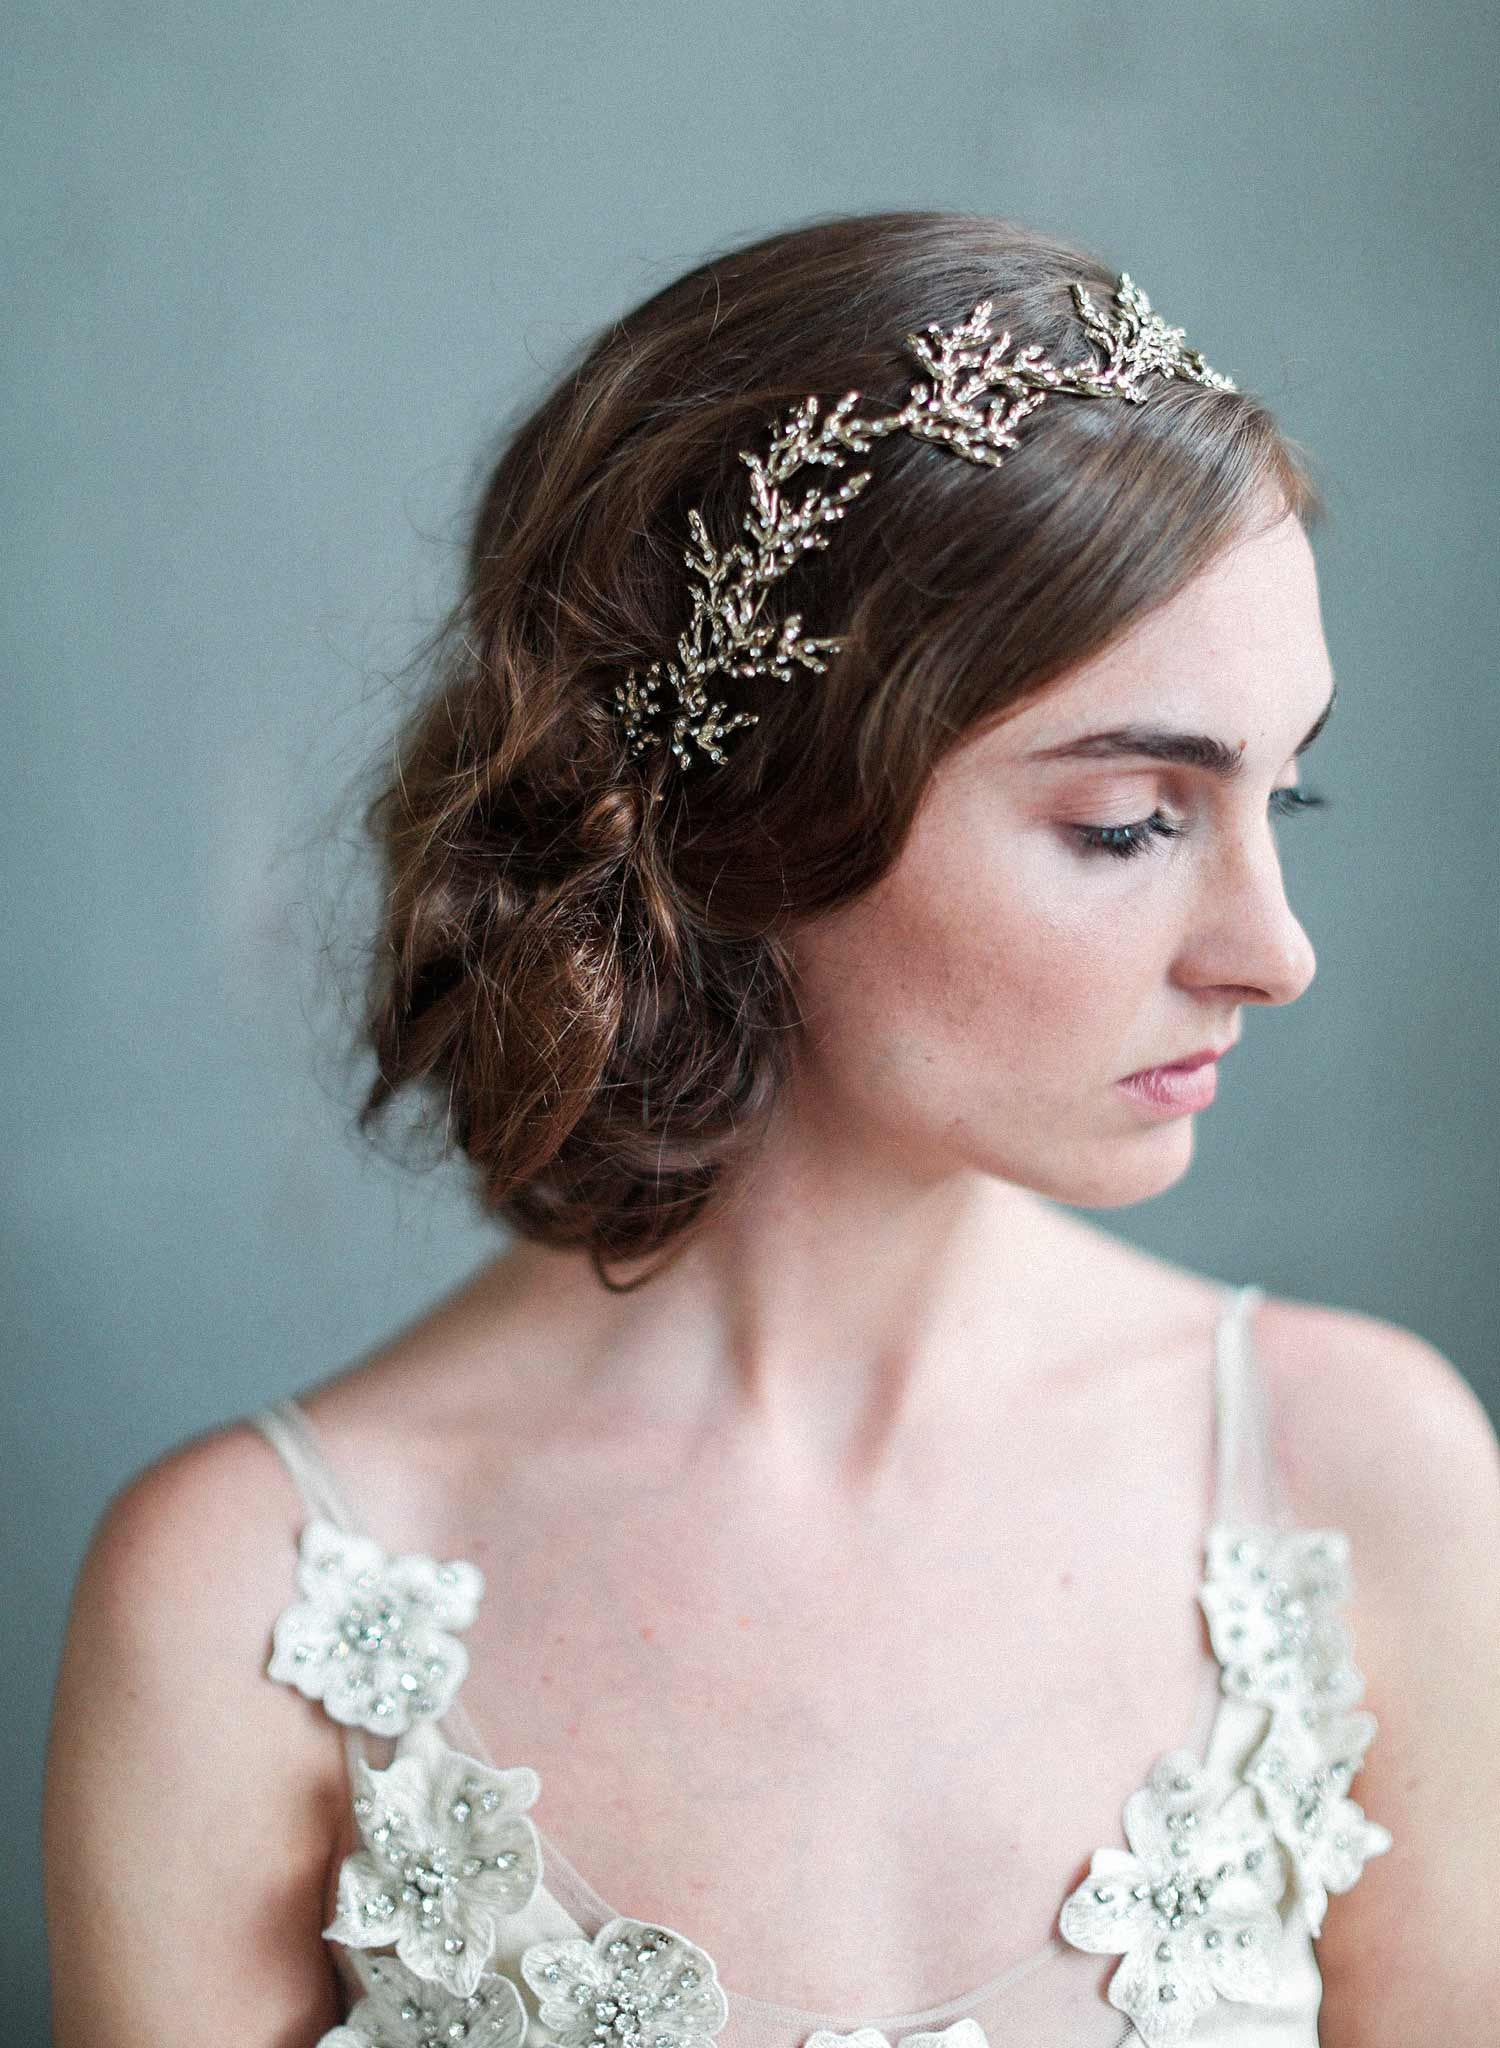 Gilded crystal encrusted branch headpiece - Style #707